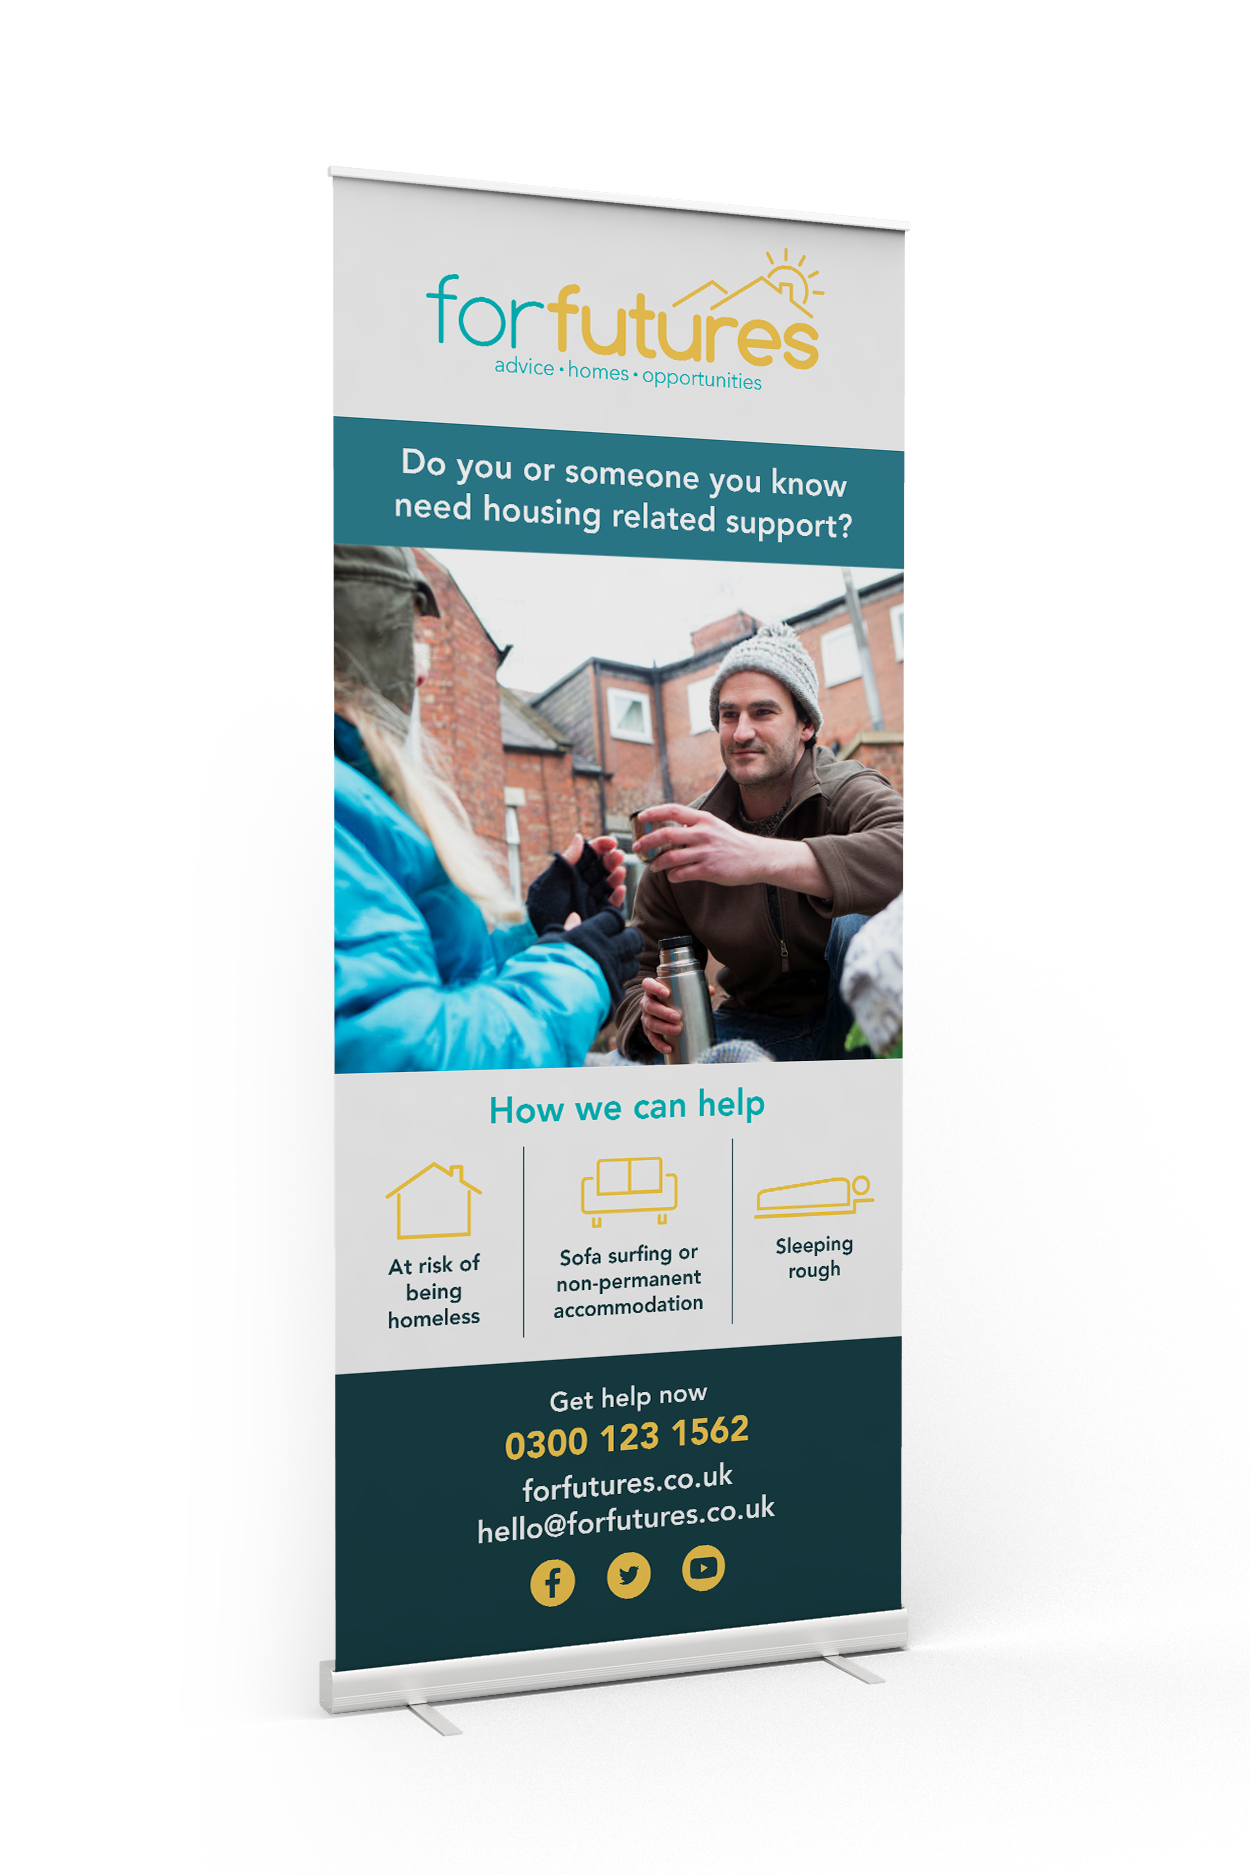 forfutures branded roll up banner showing man helping homeless person and offering help